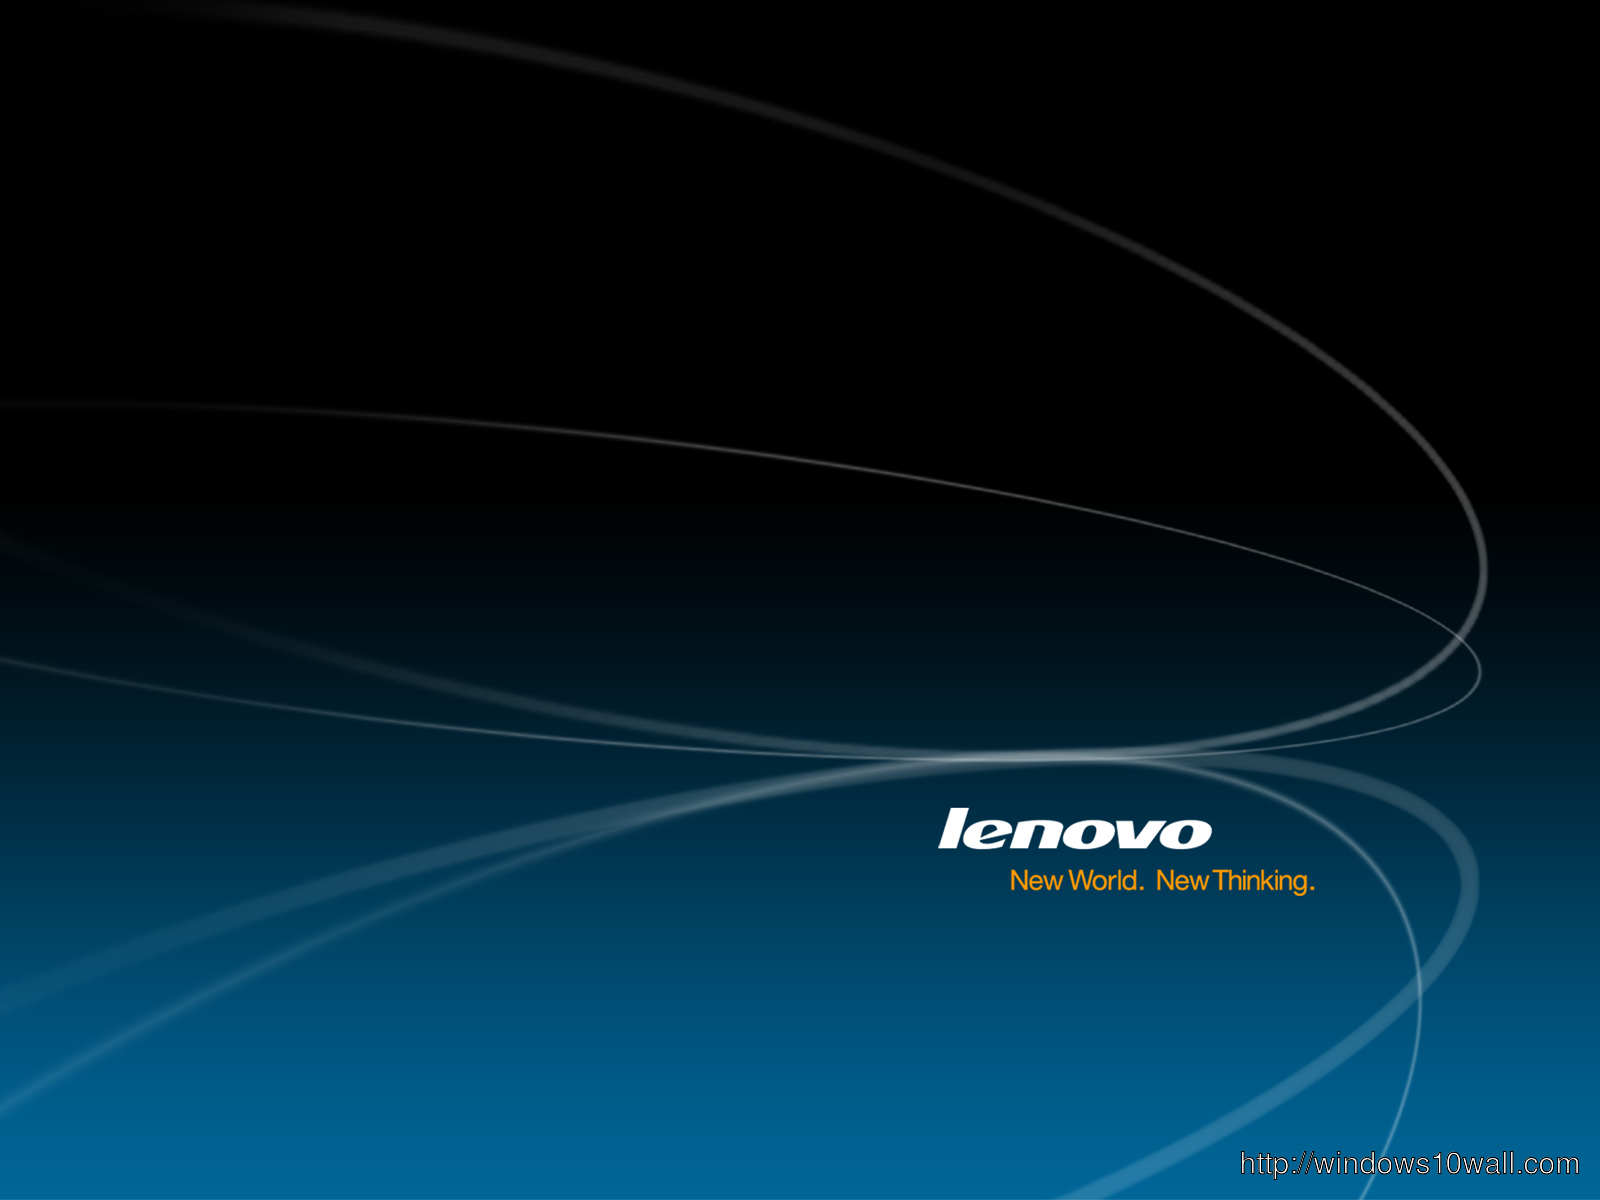 New World Thinking For Fans Lenovo Background Wallpaper